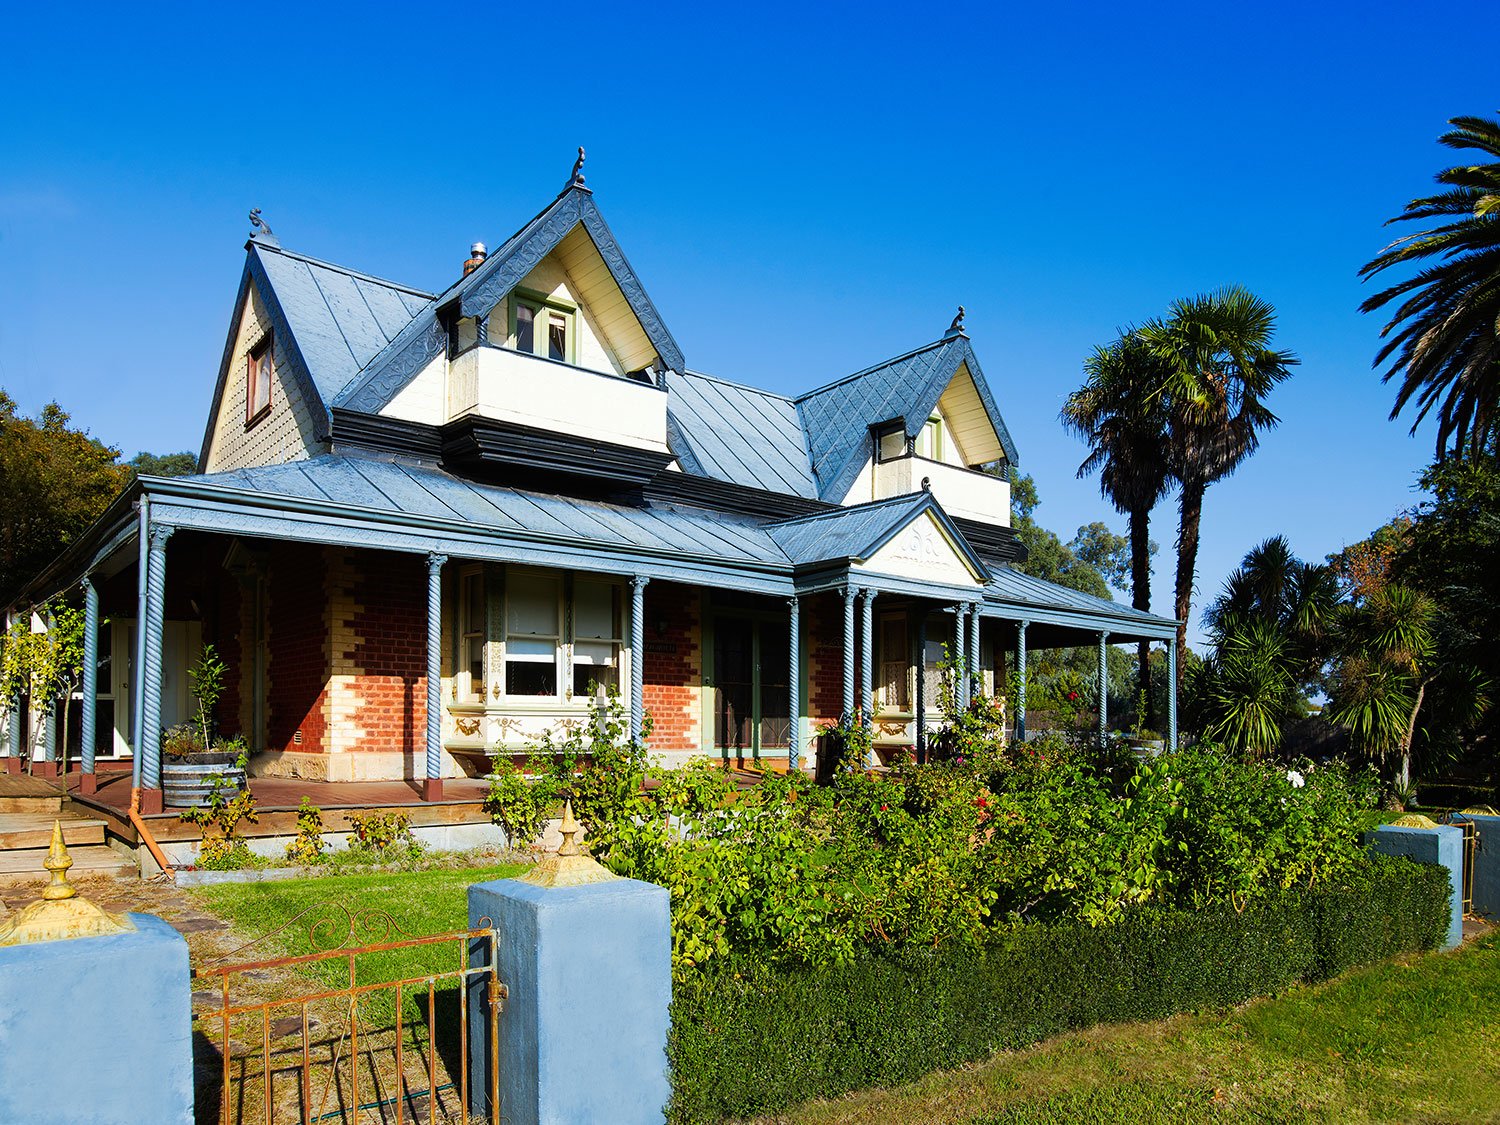 Historic Magnolia House, Mansfield - now home to Ros Ritchie Wines